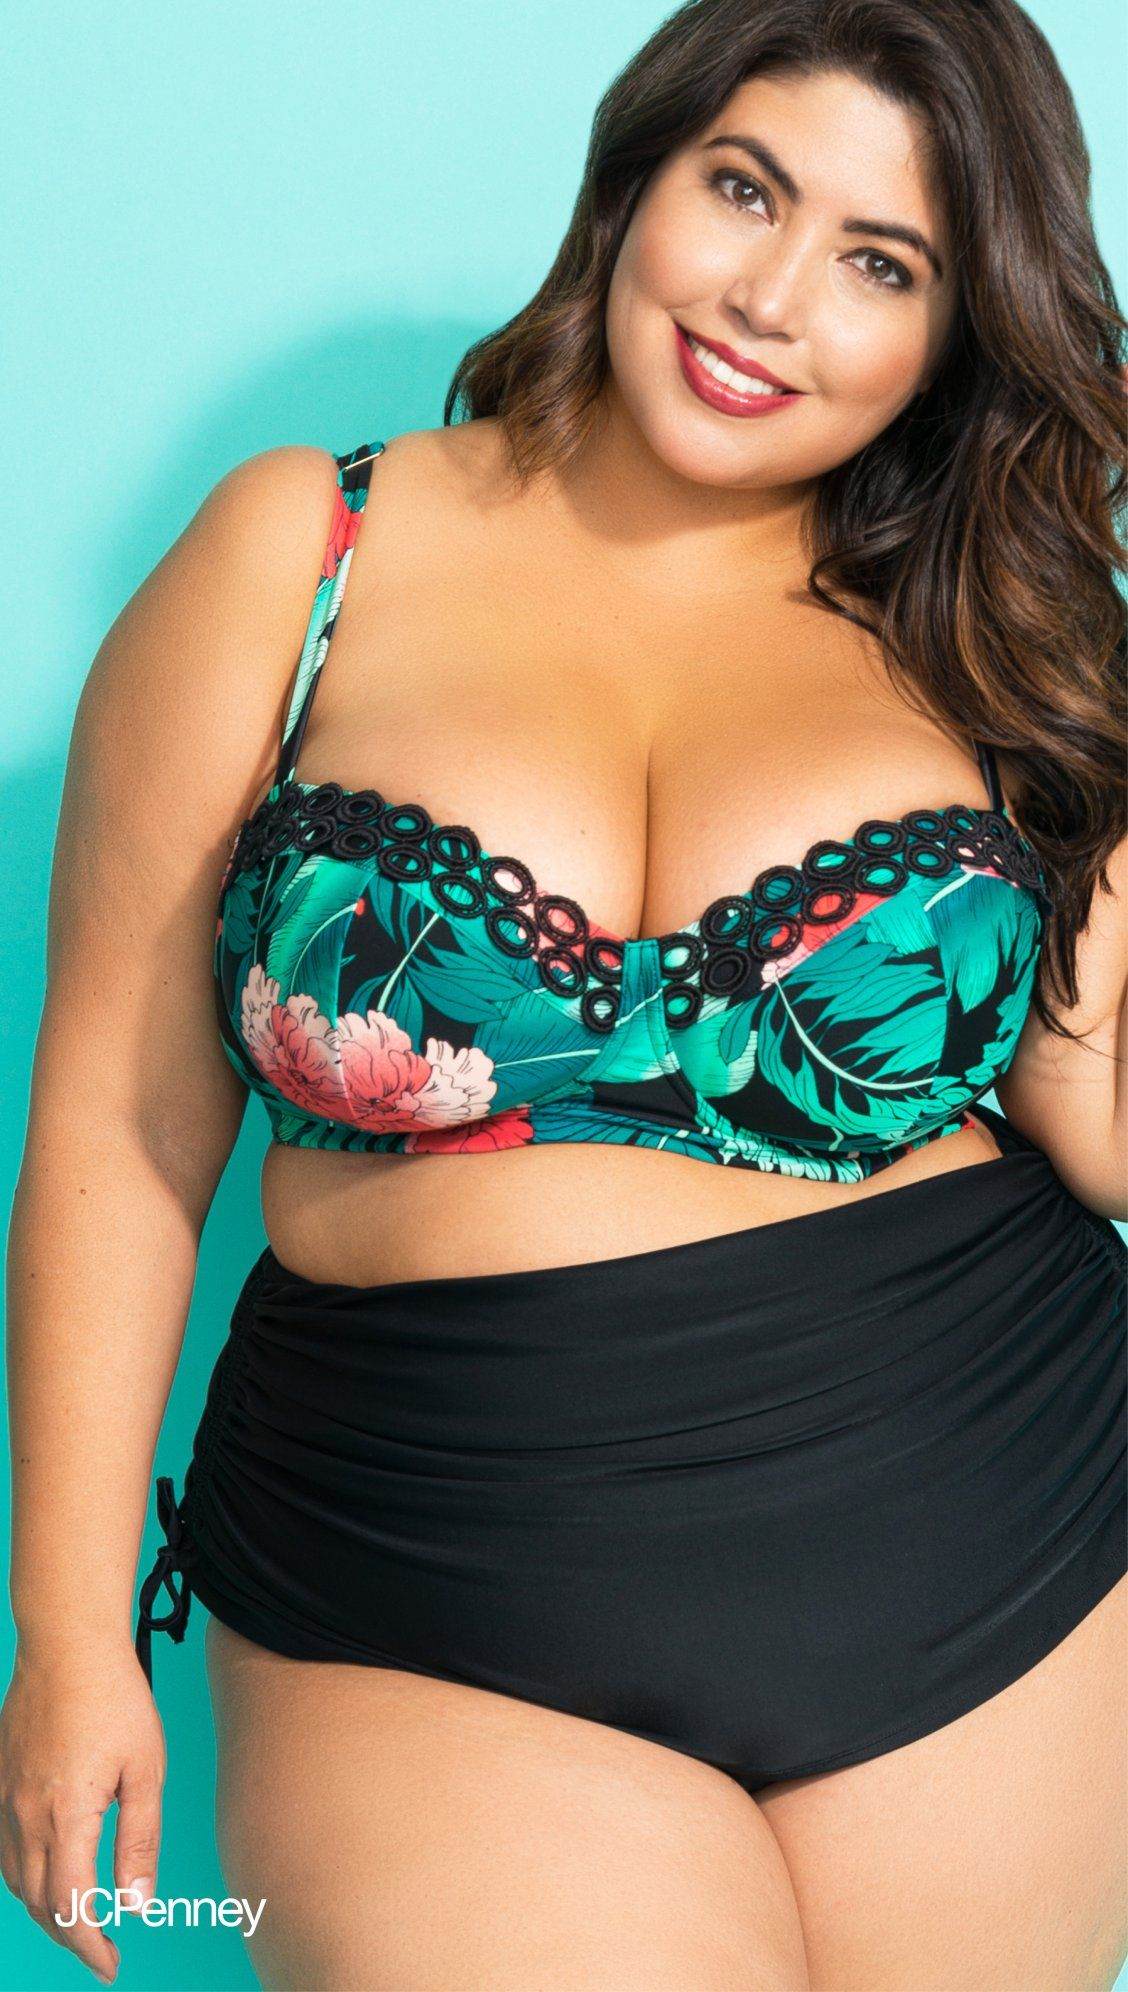 acaa98193b0 Looking for high waist bathing suits for curvy girls  We have just the  thing—the all new Boutique Plus swimwear in collaboration with plus size  model ...